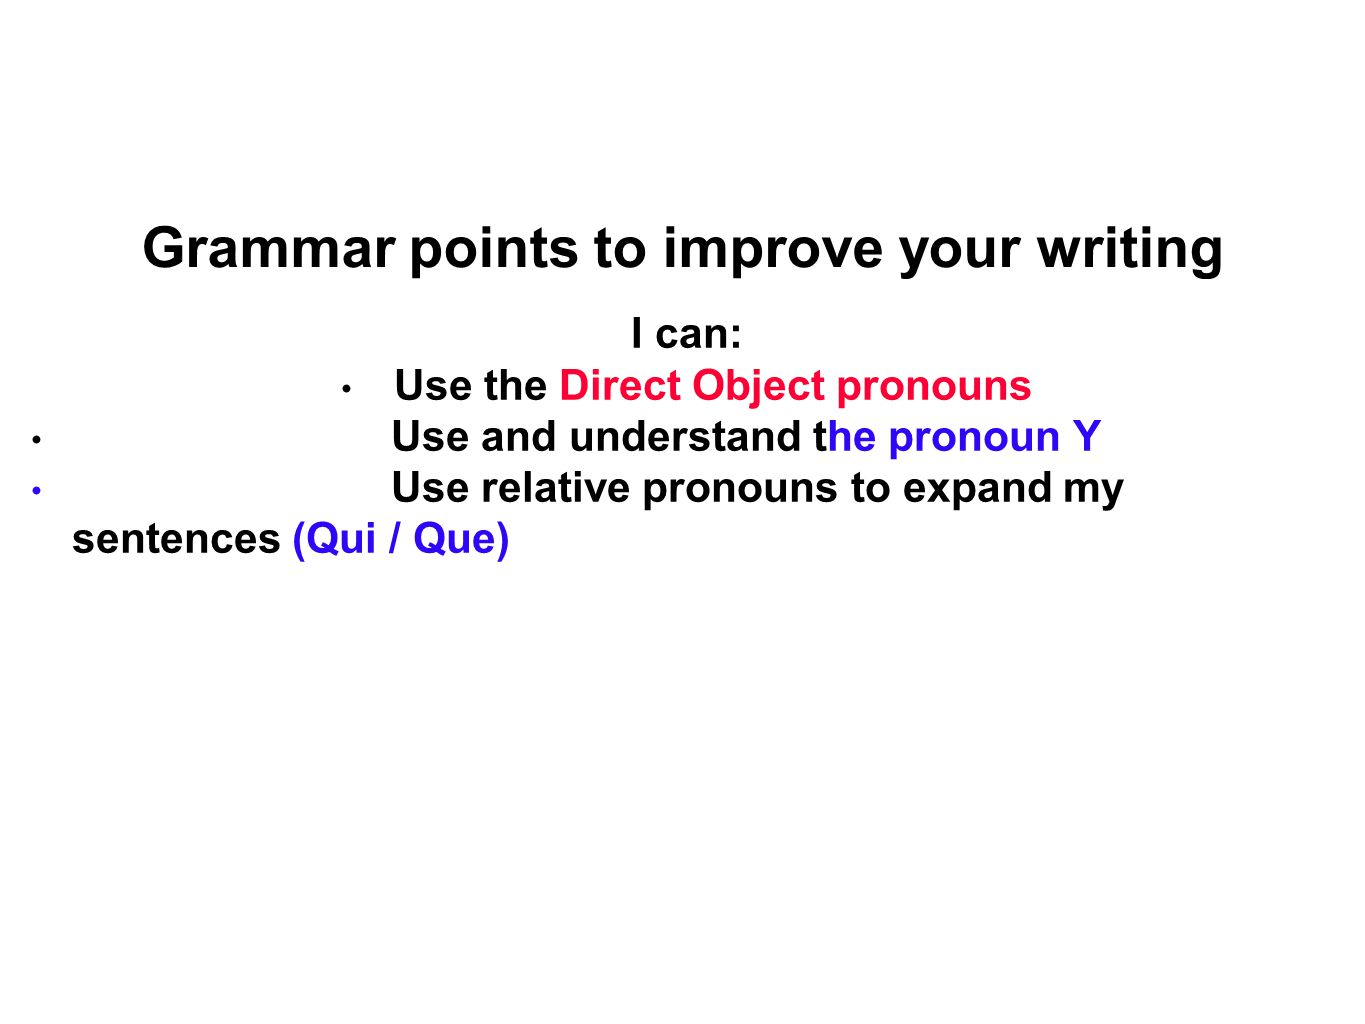 Grammar points to improve your writing I can: Use the Direct Object pronouns Use and understand the pronoun Y Use relative pronouns to expand my sentences (Qui / Que)